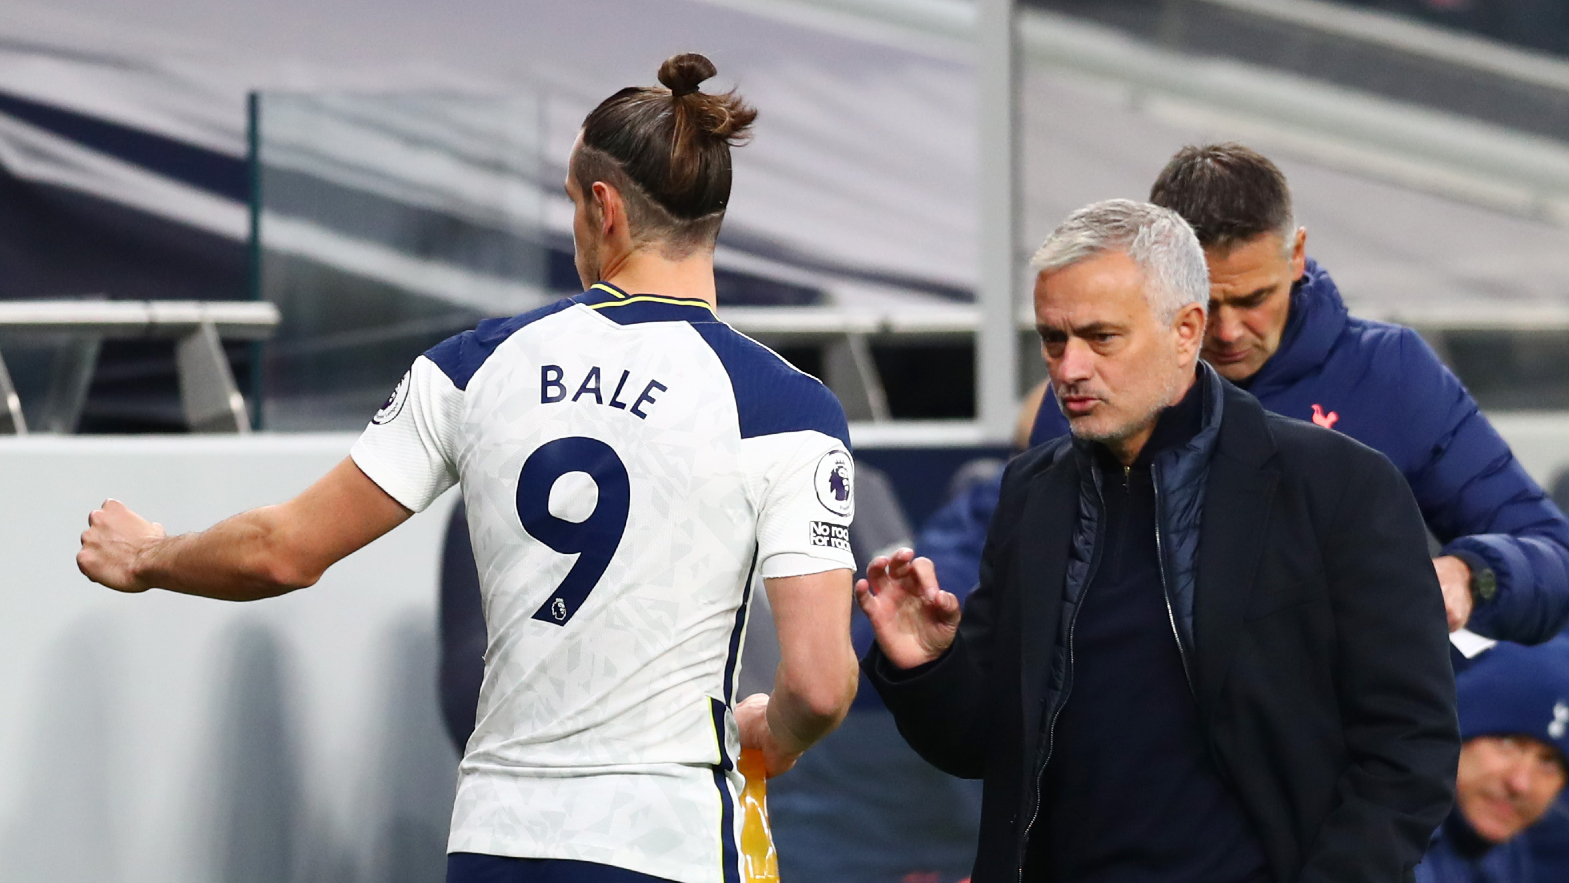 Bale S A Serial Winner Mourinho S A Born Winner Spurs Can Sustain Title Challenge Says Robinson Goal Com